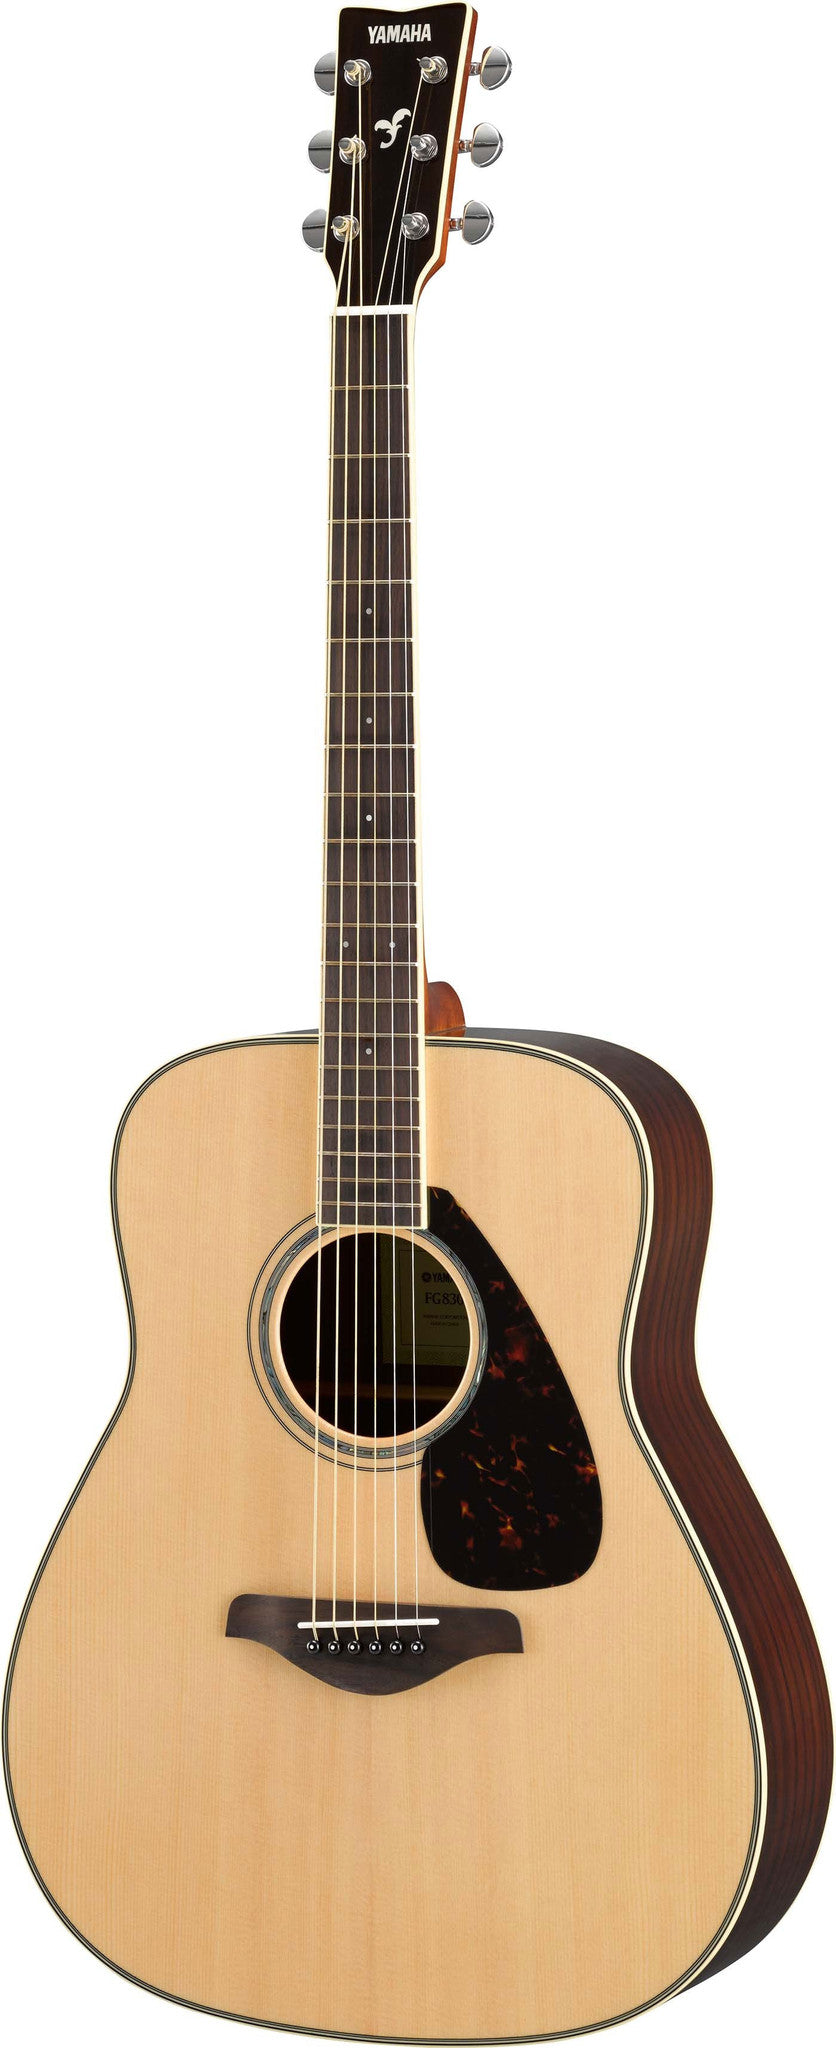 Yamaha FG830 Dreadnought Acoustic Guitar Bundle